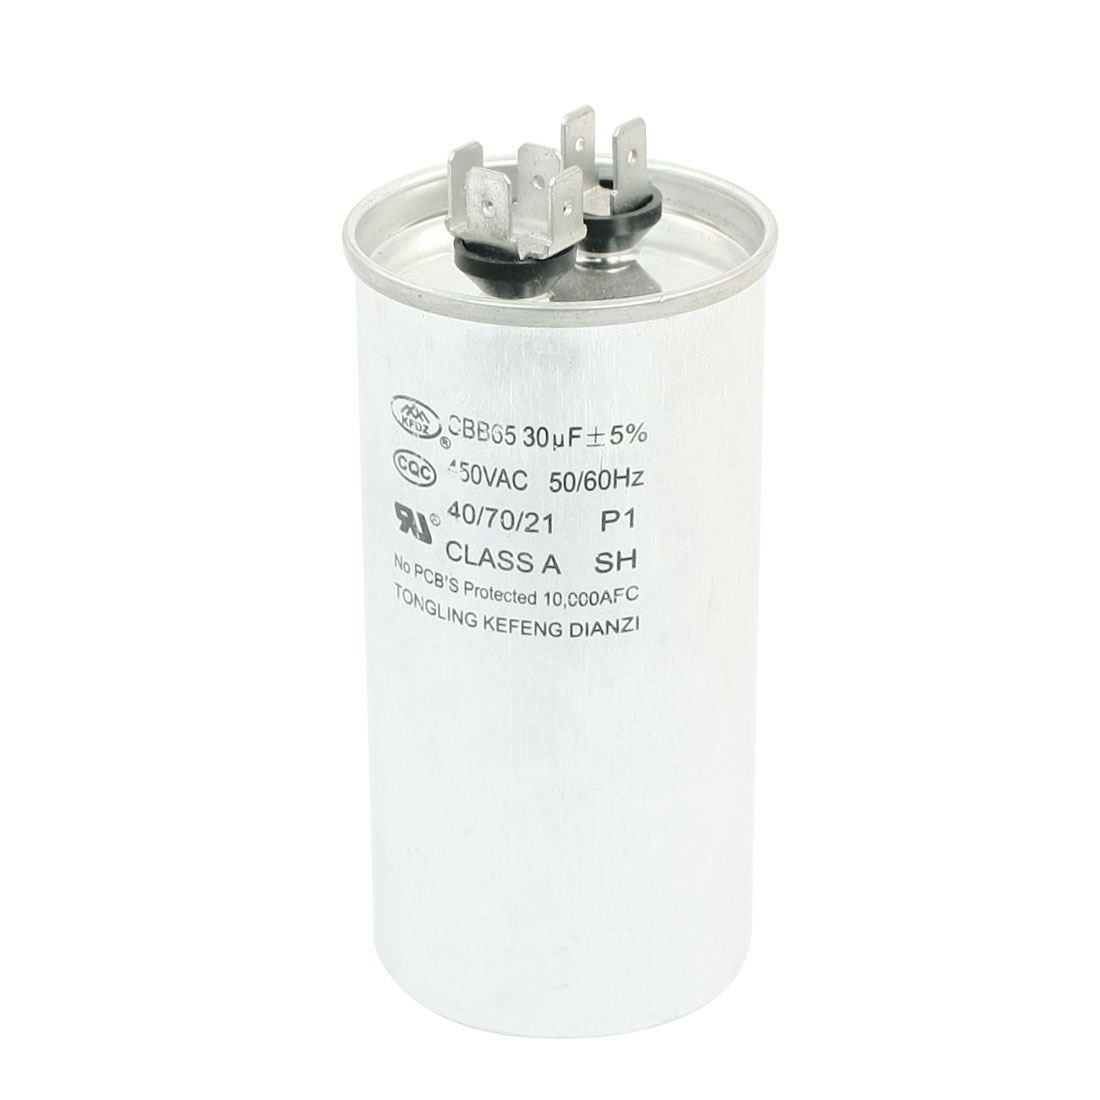 AC 450V 30uF 5% 50/60Hz 6 Terminals Cylinder Shaped Air Conditioner Motor Run Capacitor CBB65